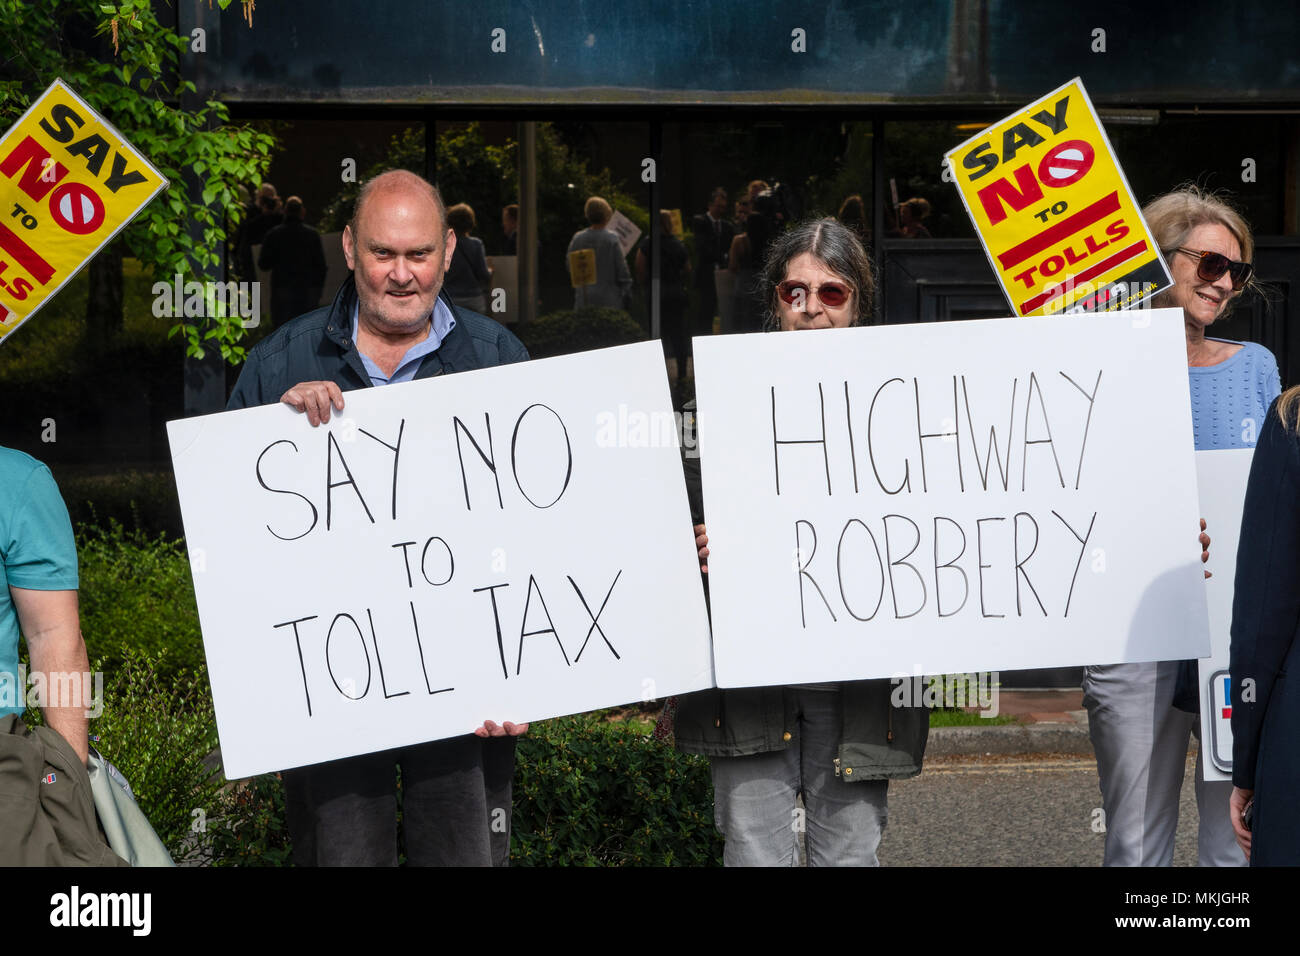 Runcorn, Cheshire, UK. 8th.May 2018: A group of anti-toll protesters gathered outside the Holiday Inn, Runcorn, around 09:30 hours prior to the tribunal commencing over the legality of the New Mersey Bridge toll collection. Credit: Dave Ellison/Alamy Live News - Stock Image